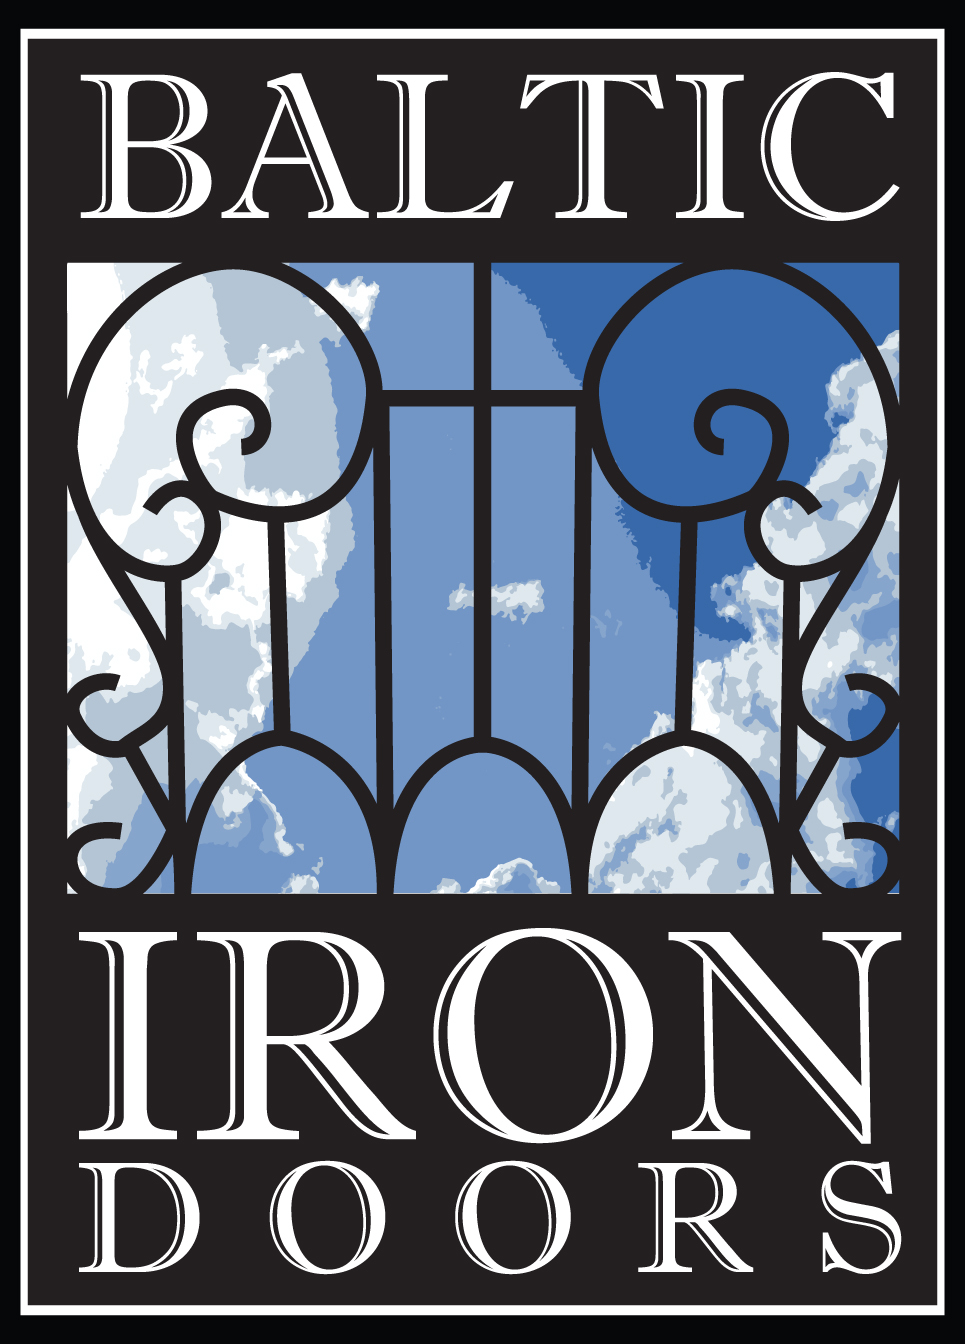 Baltic Iron Doors